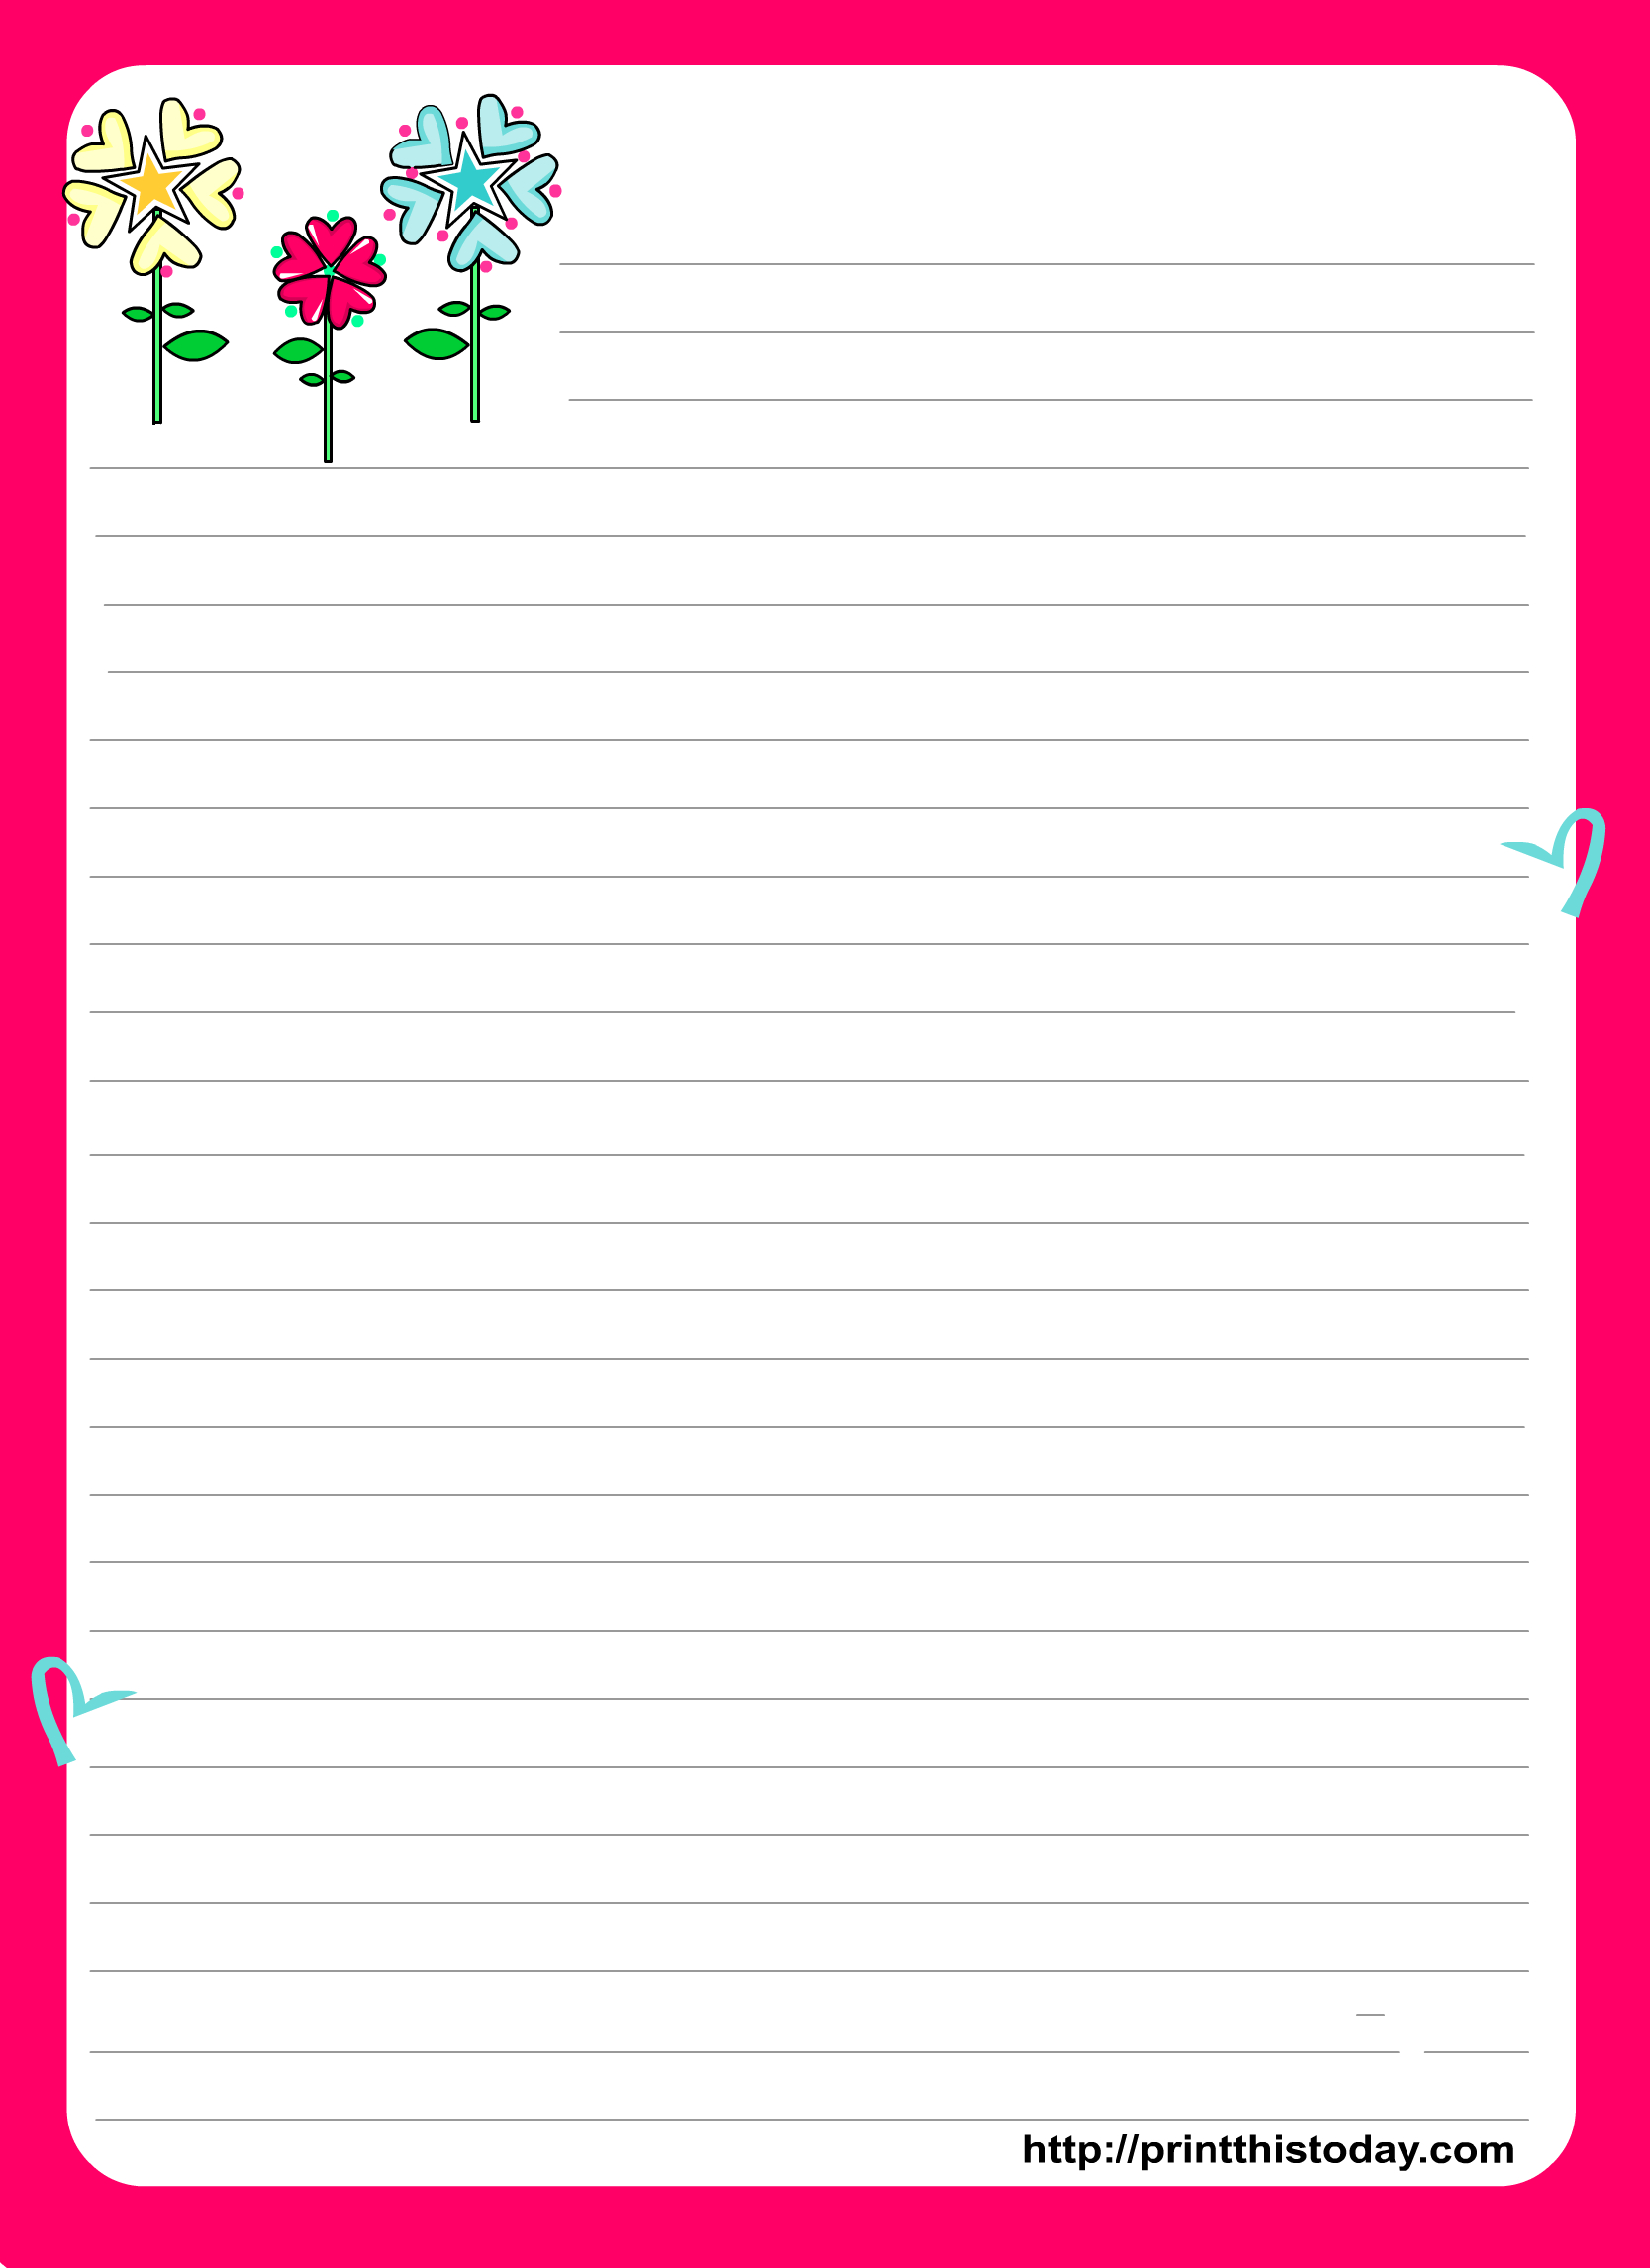 Love Letter Pad Stationery   Stationery   Free Printable Stationery - Free Printable Love Letter Paper